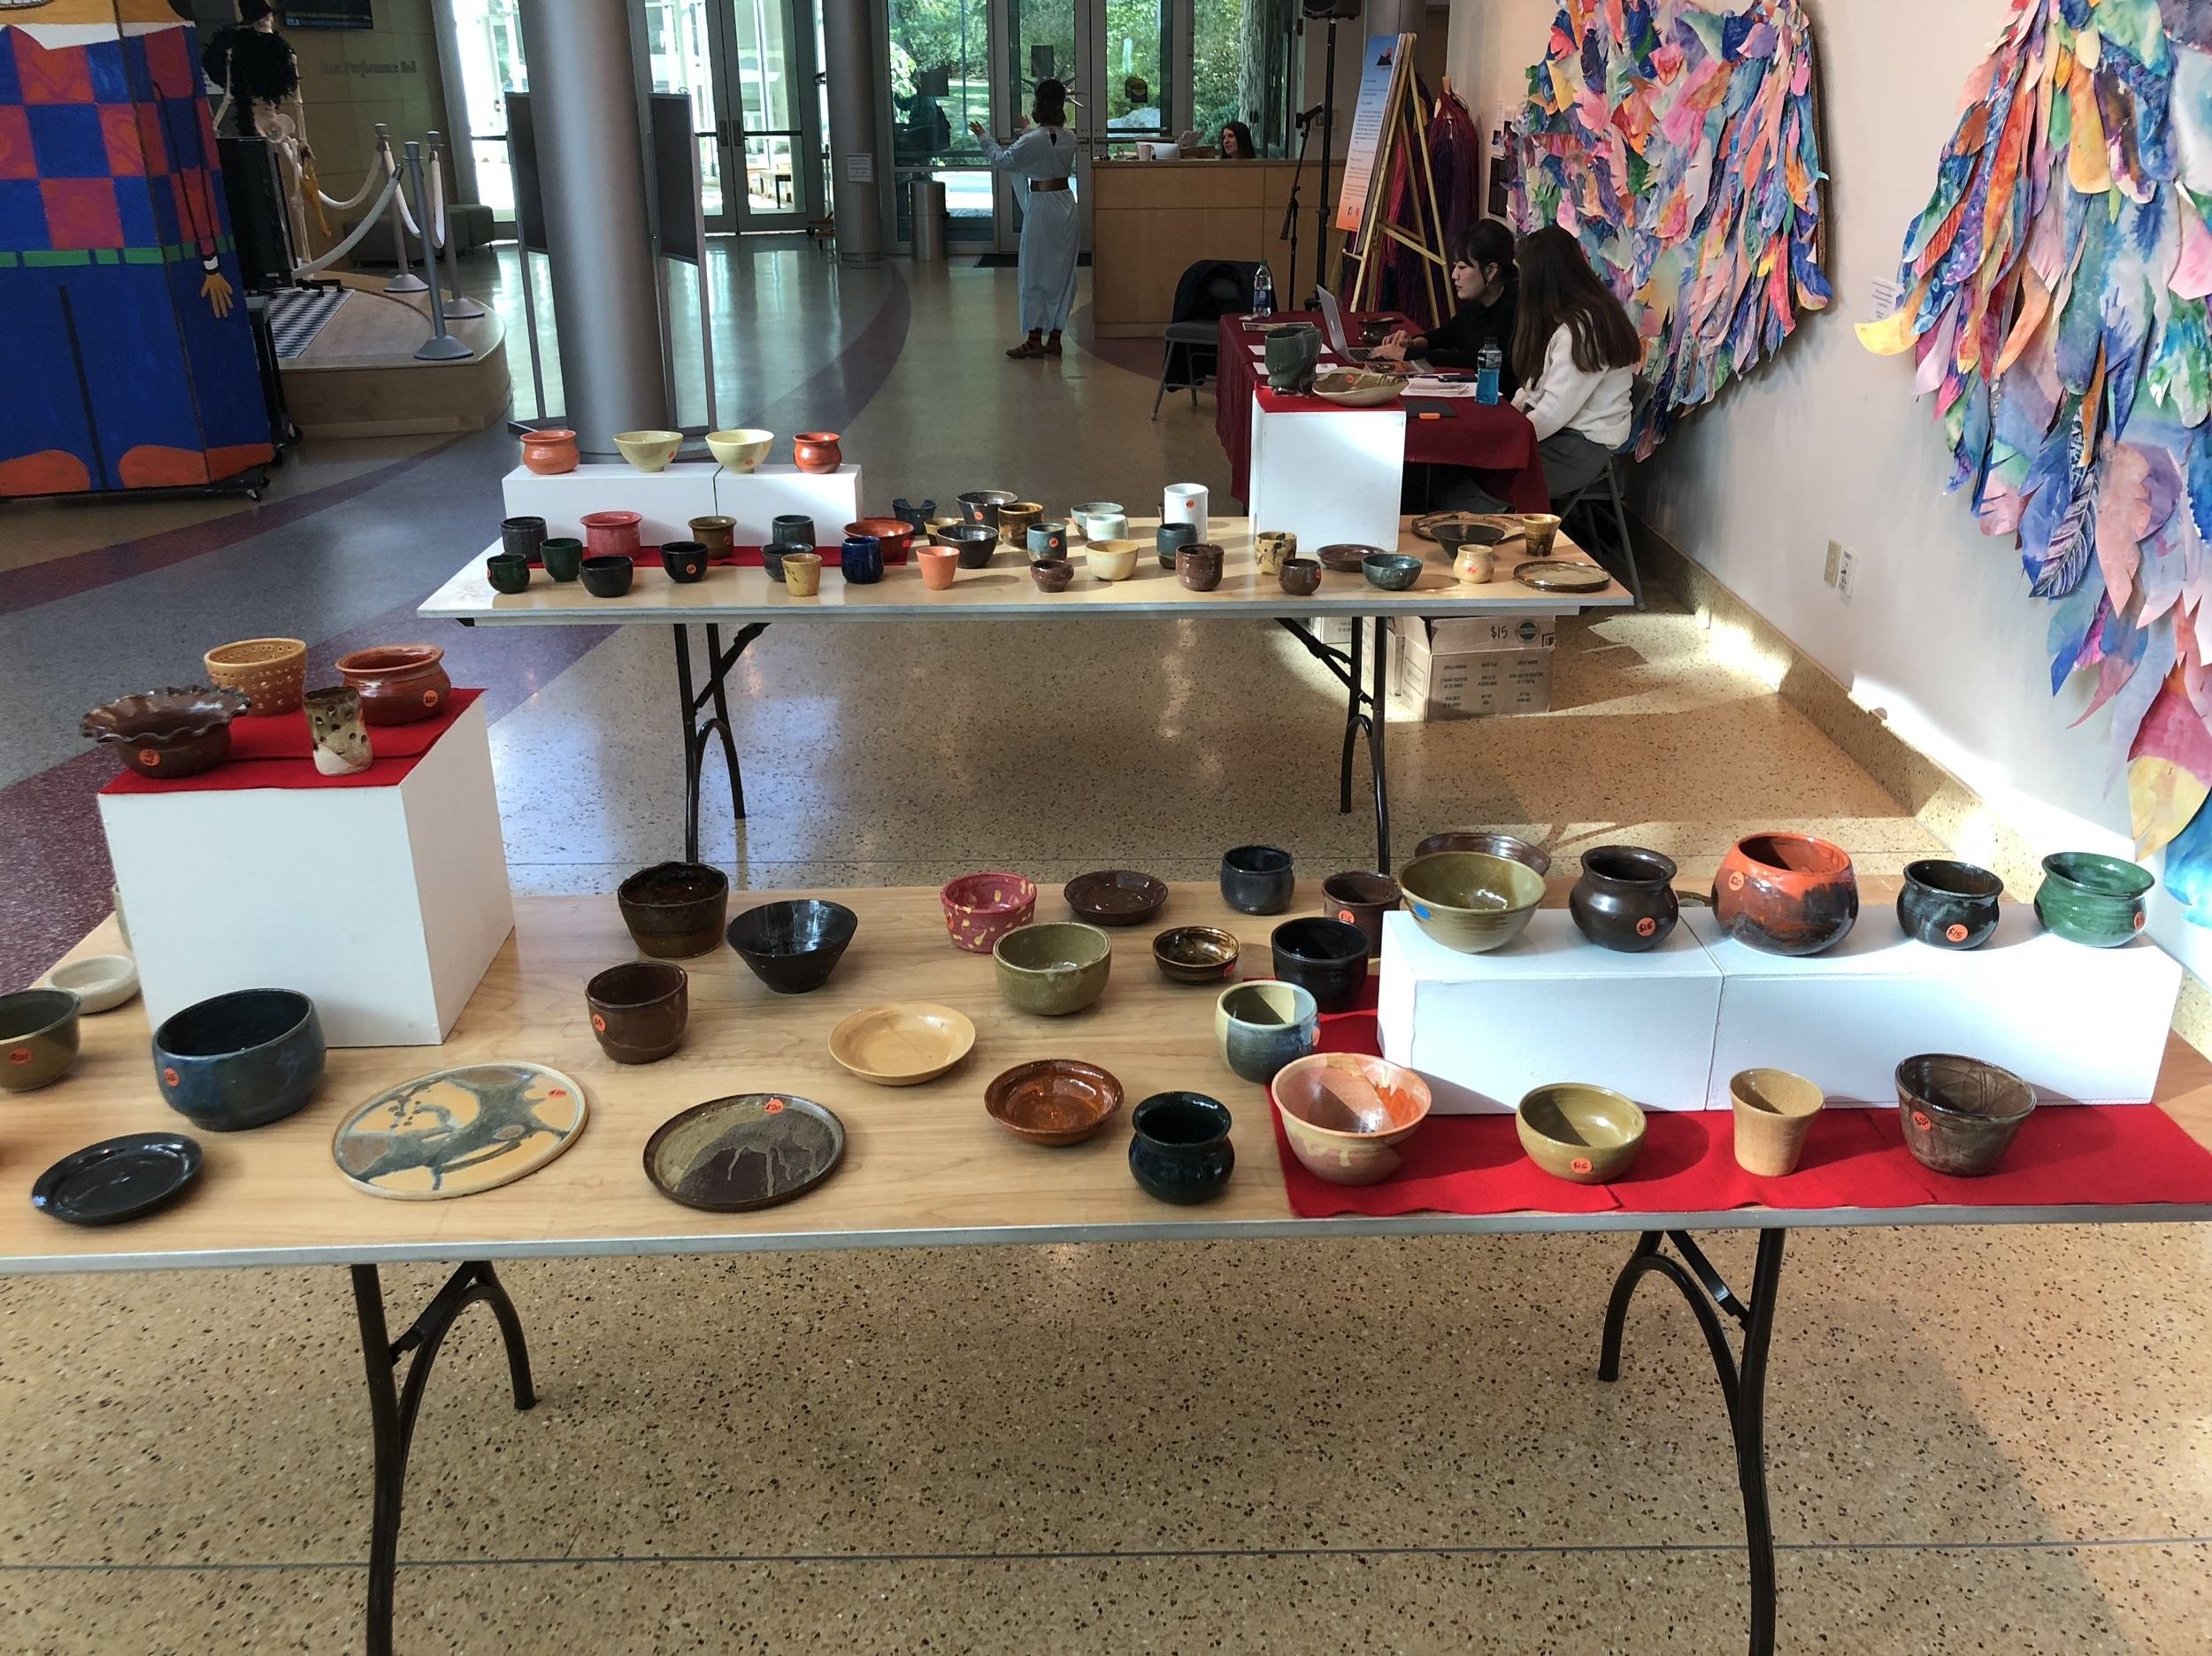 Bowls/Cups/Plates -